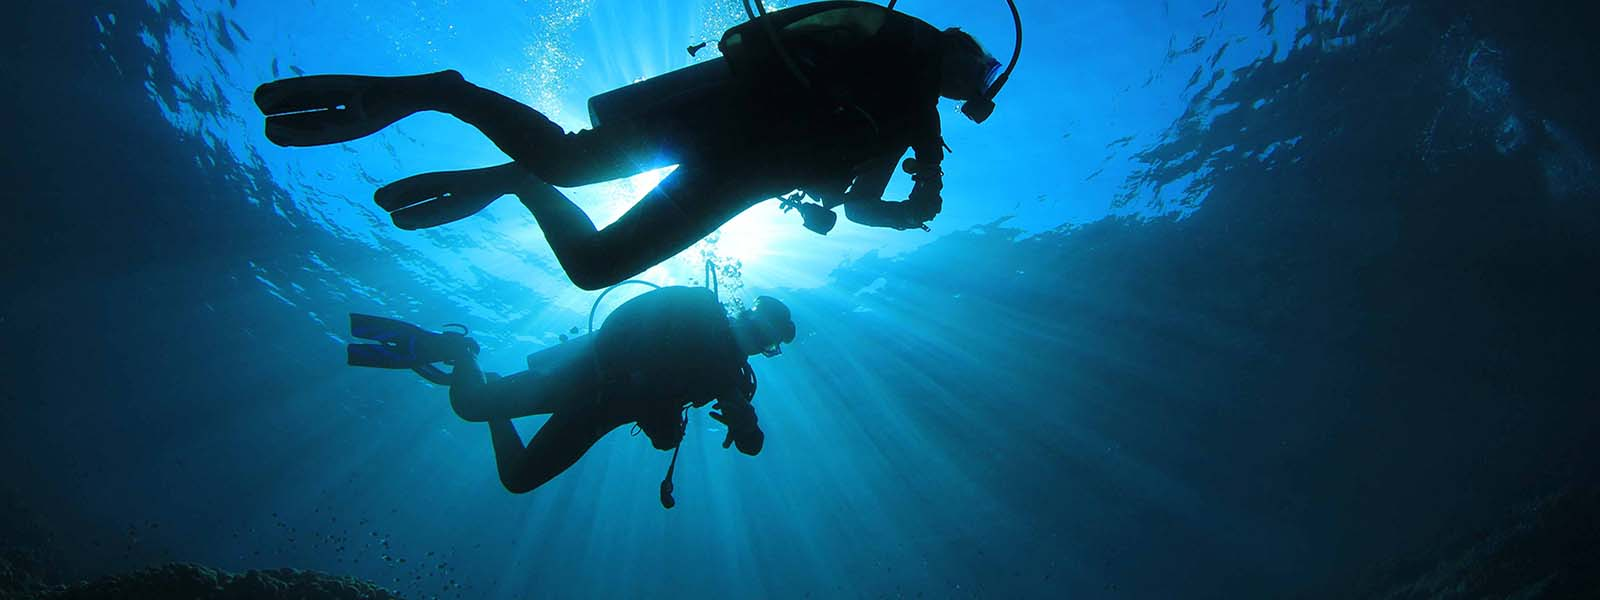 Best Florida Getaways For Diving And Snorkeling